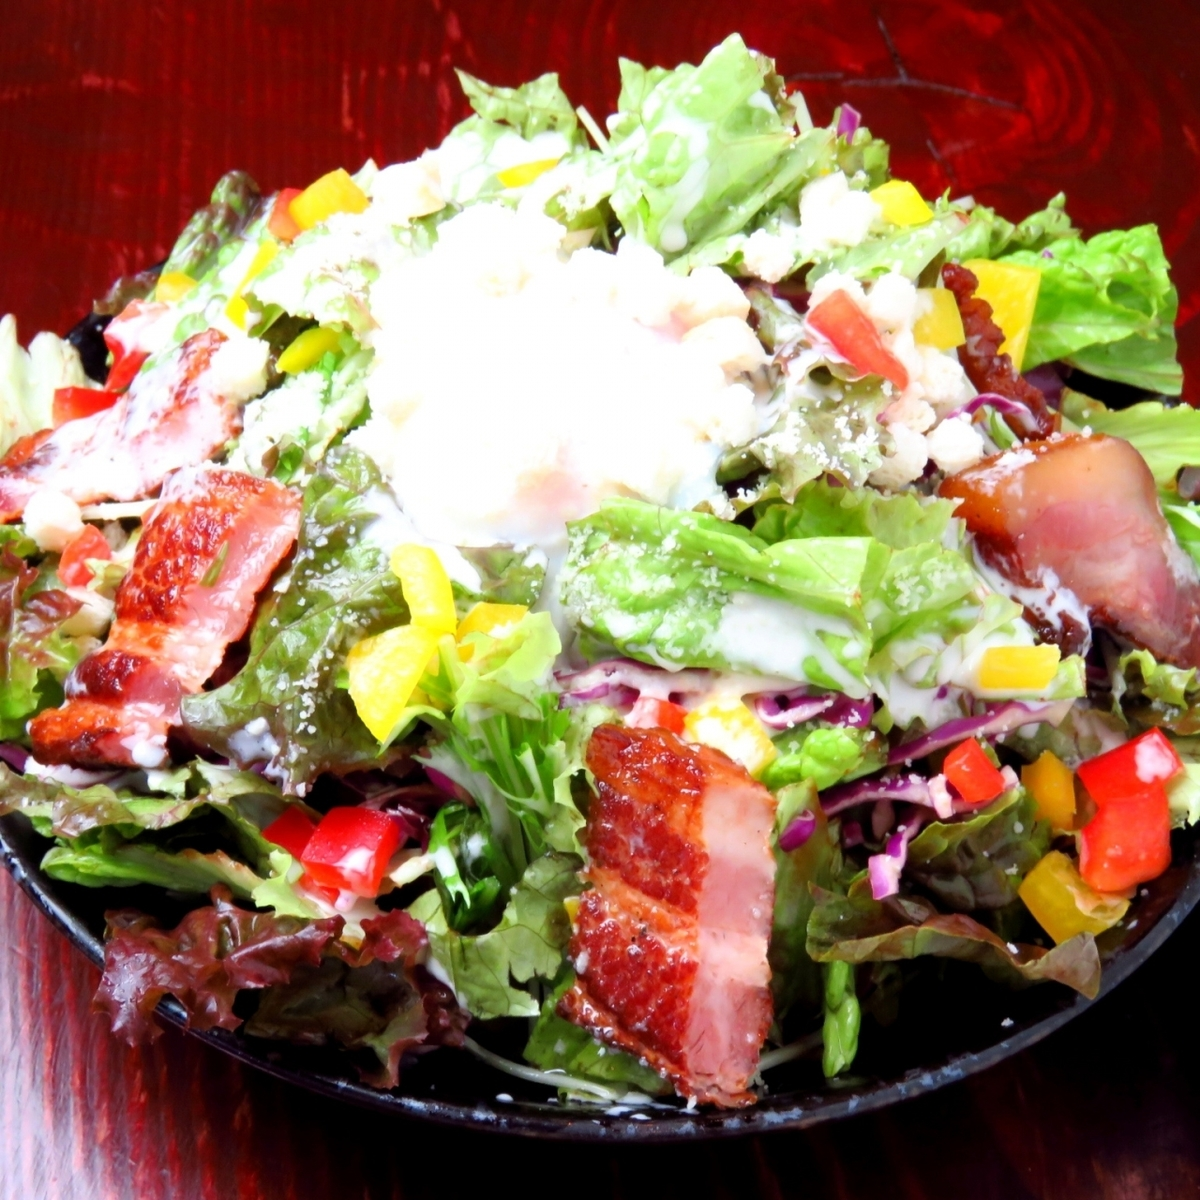 Broiled bacon and warm ball Caesar salad